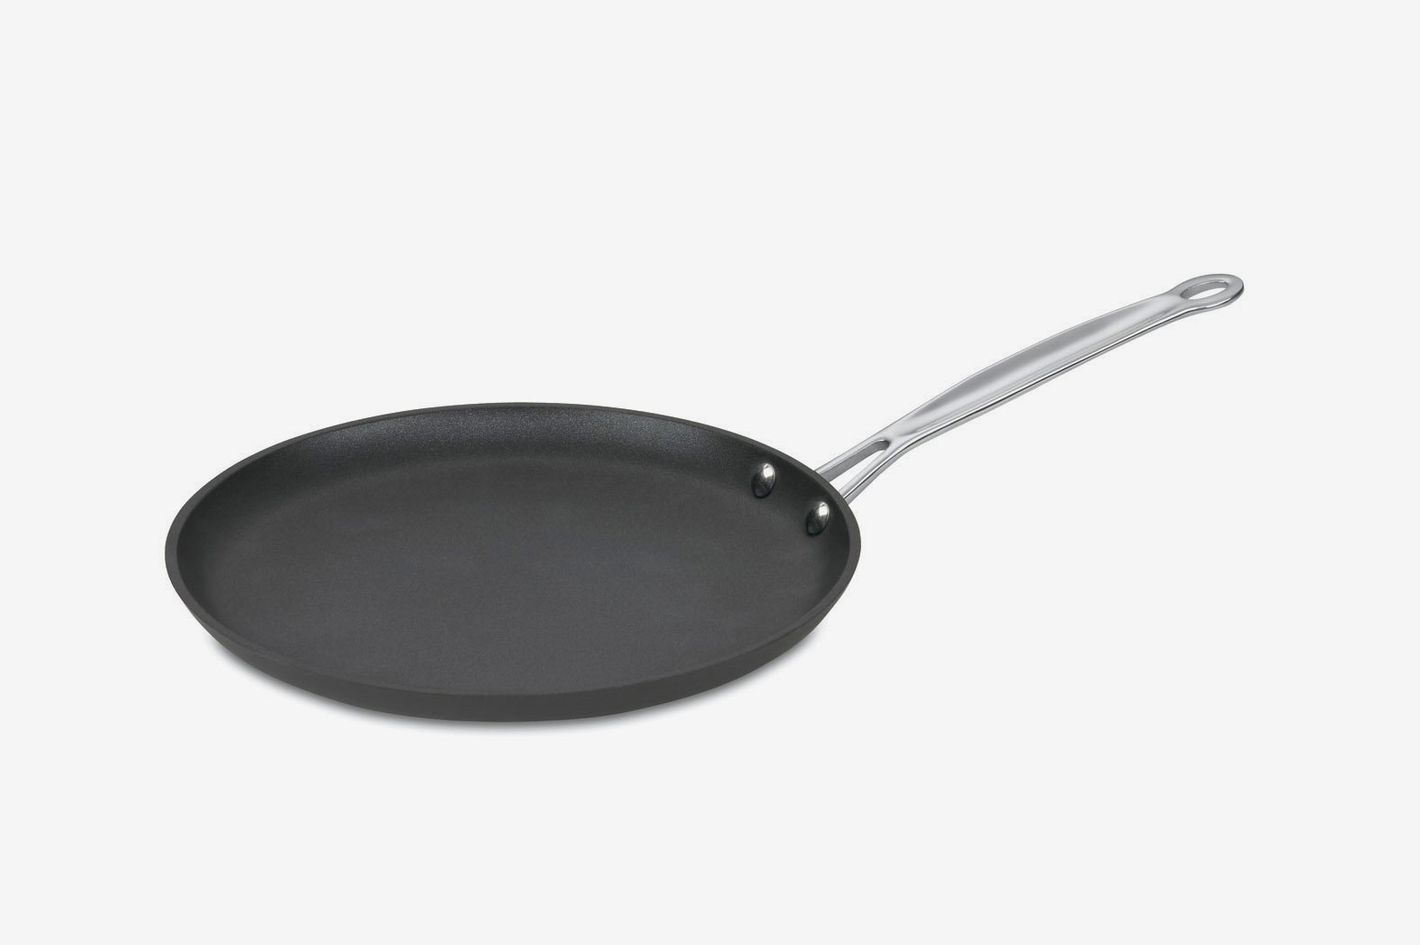 Cuisinart 623-24 Chef's Classic Nonstick Hard-Anodized 10-Inch Crepe Pan